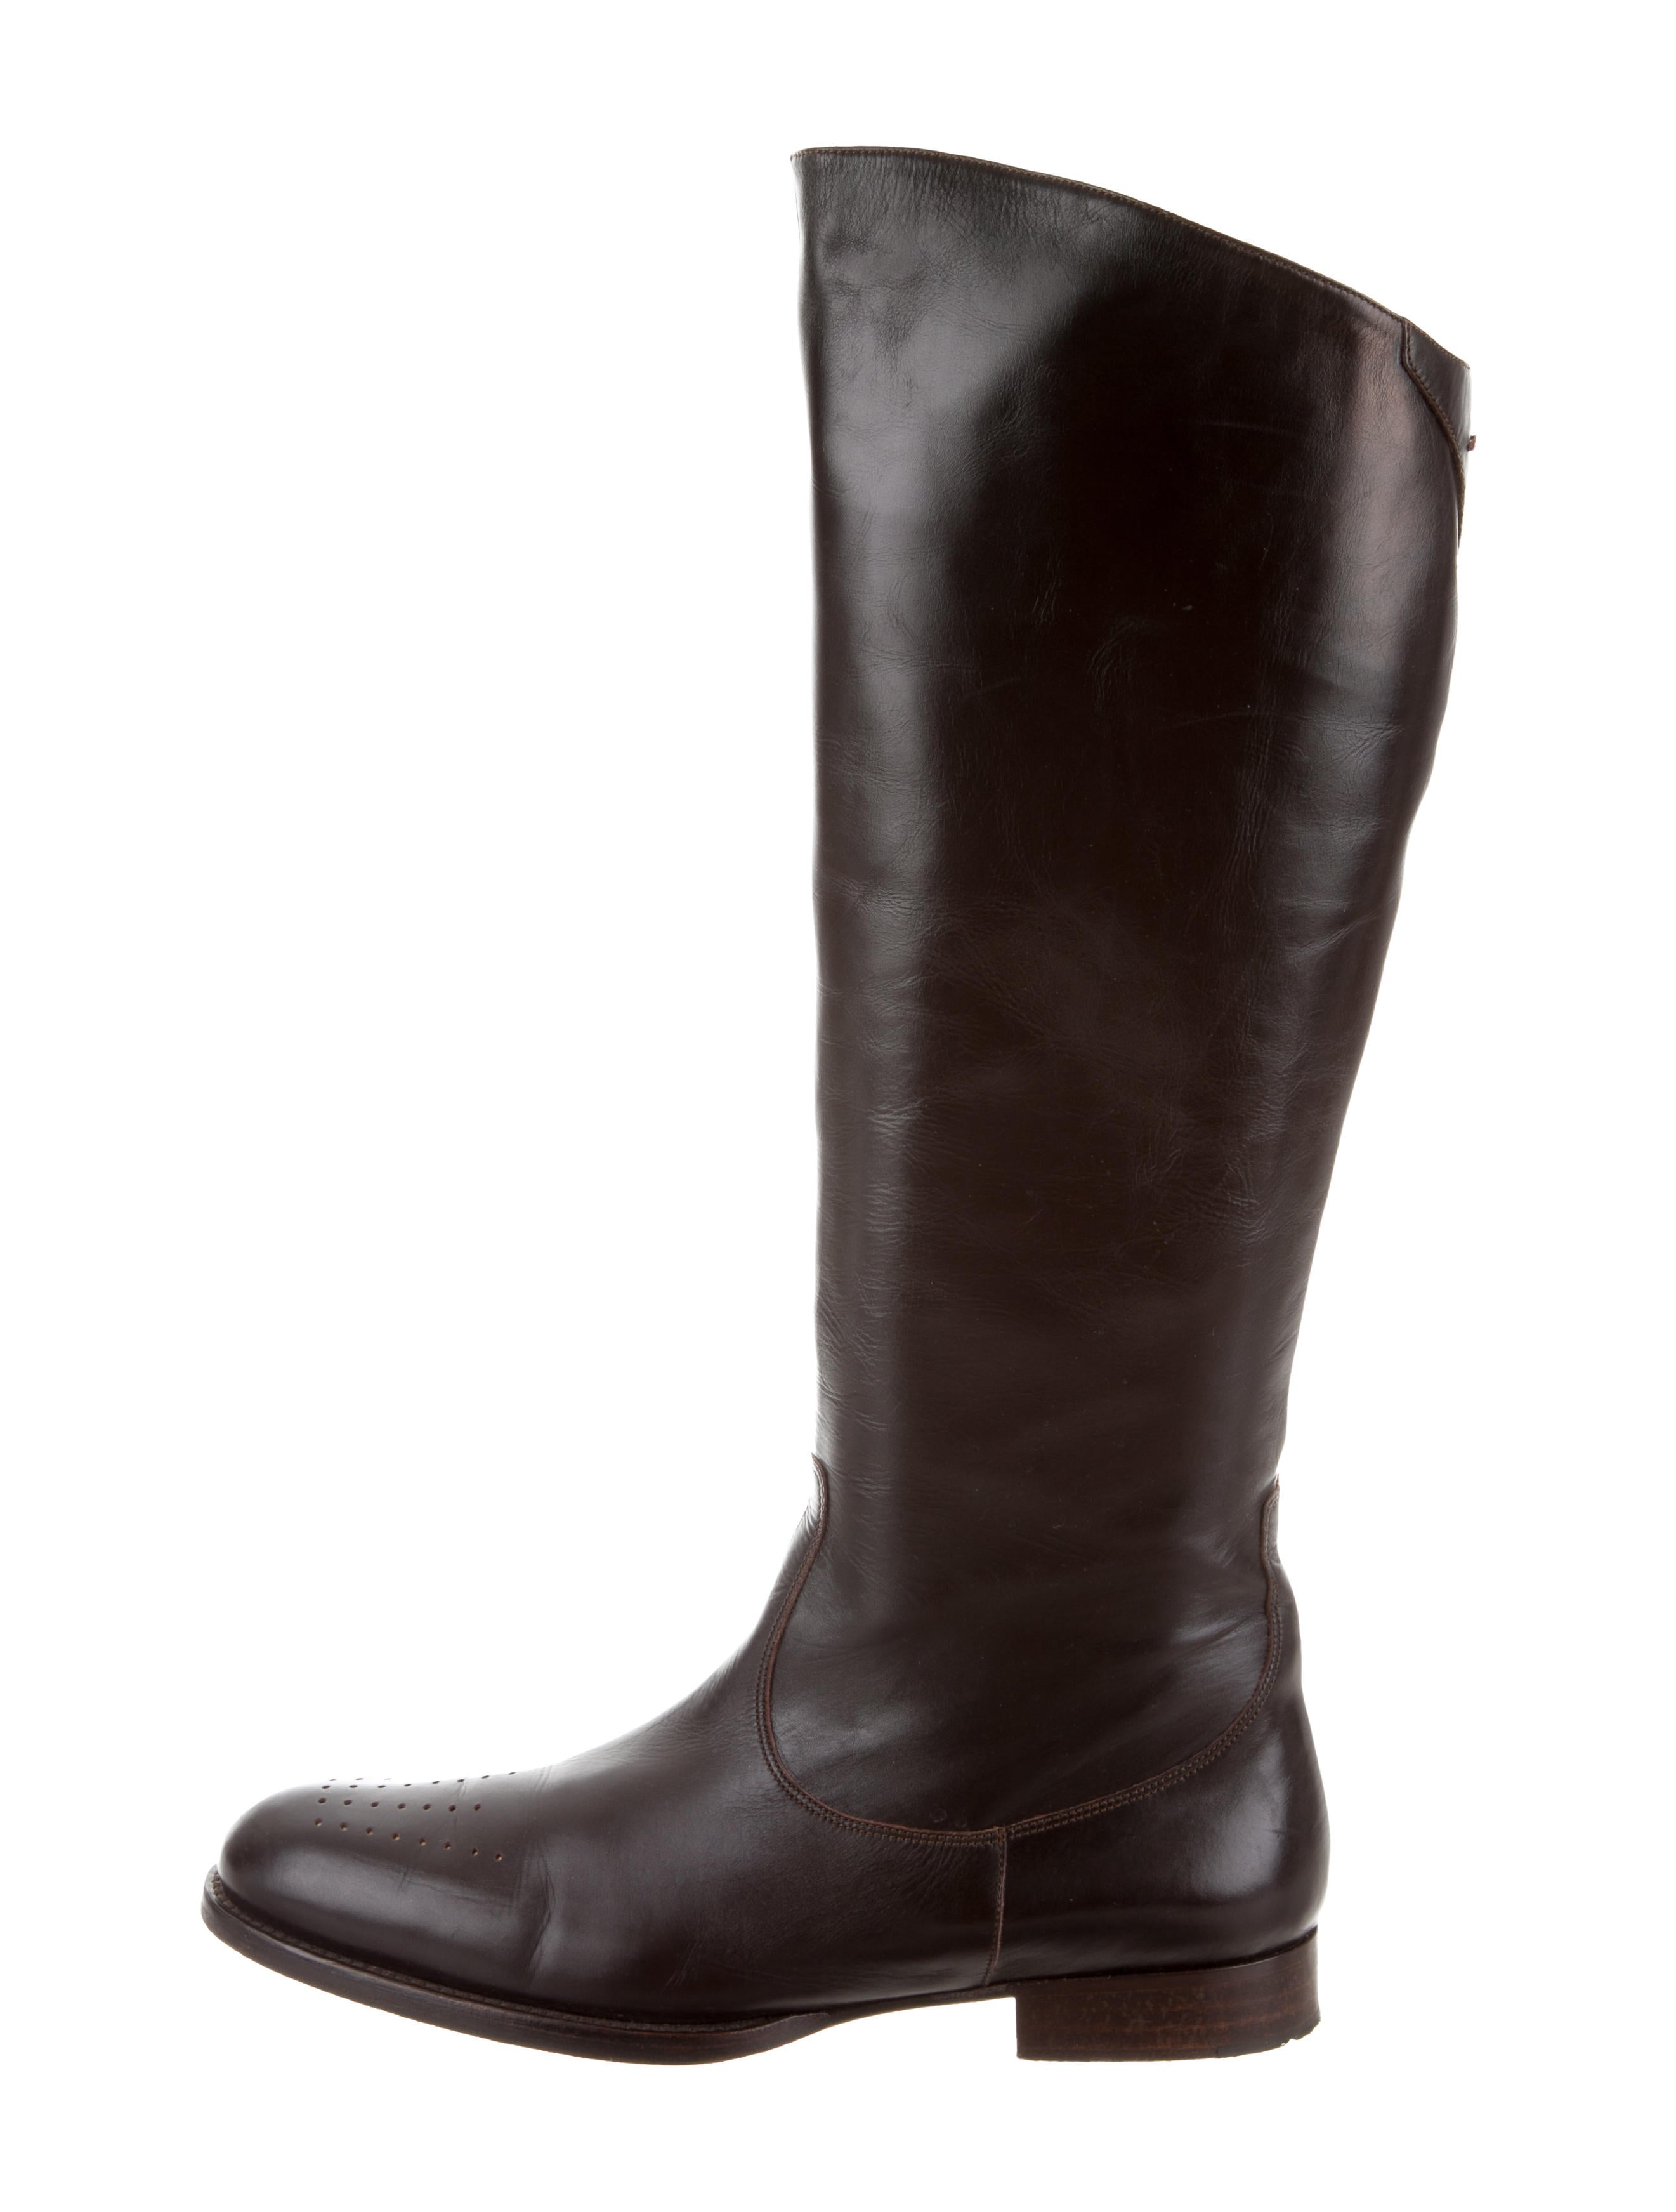 Stephane Kélian Leather Knee-High Boots clearance free shipping outlet factory outlet bUd5A